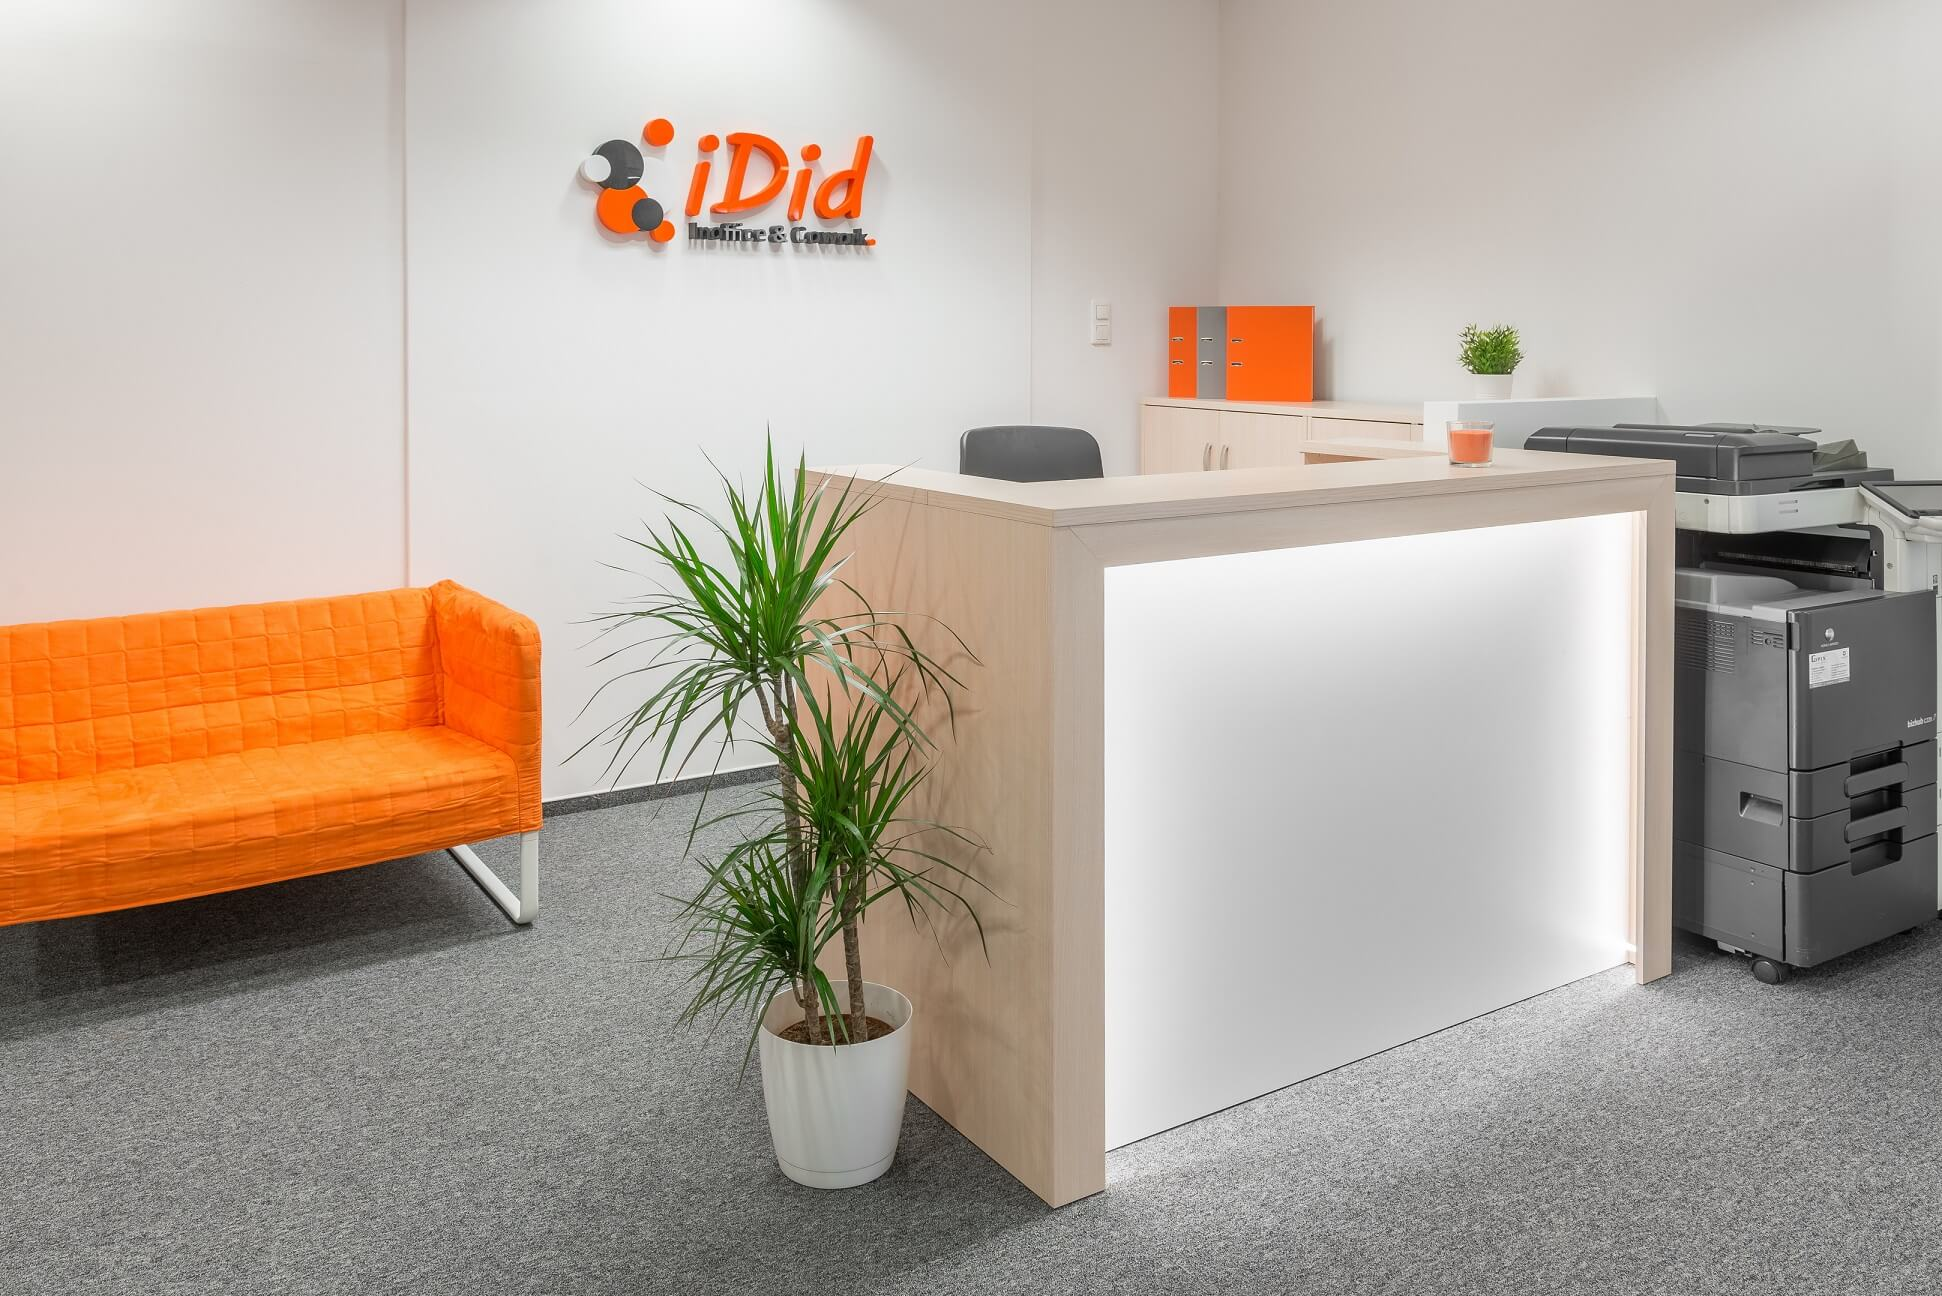 Office - iDid Babka Tower - Serviced Office - Warsaw